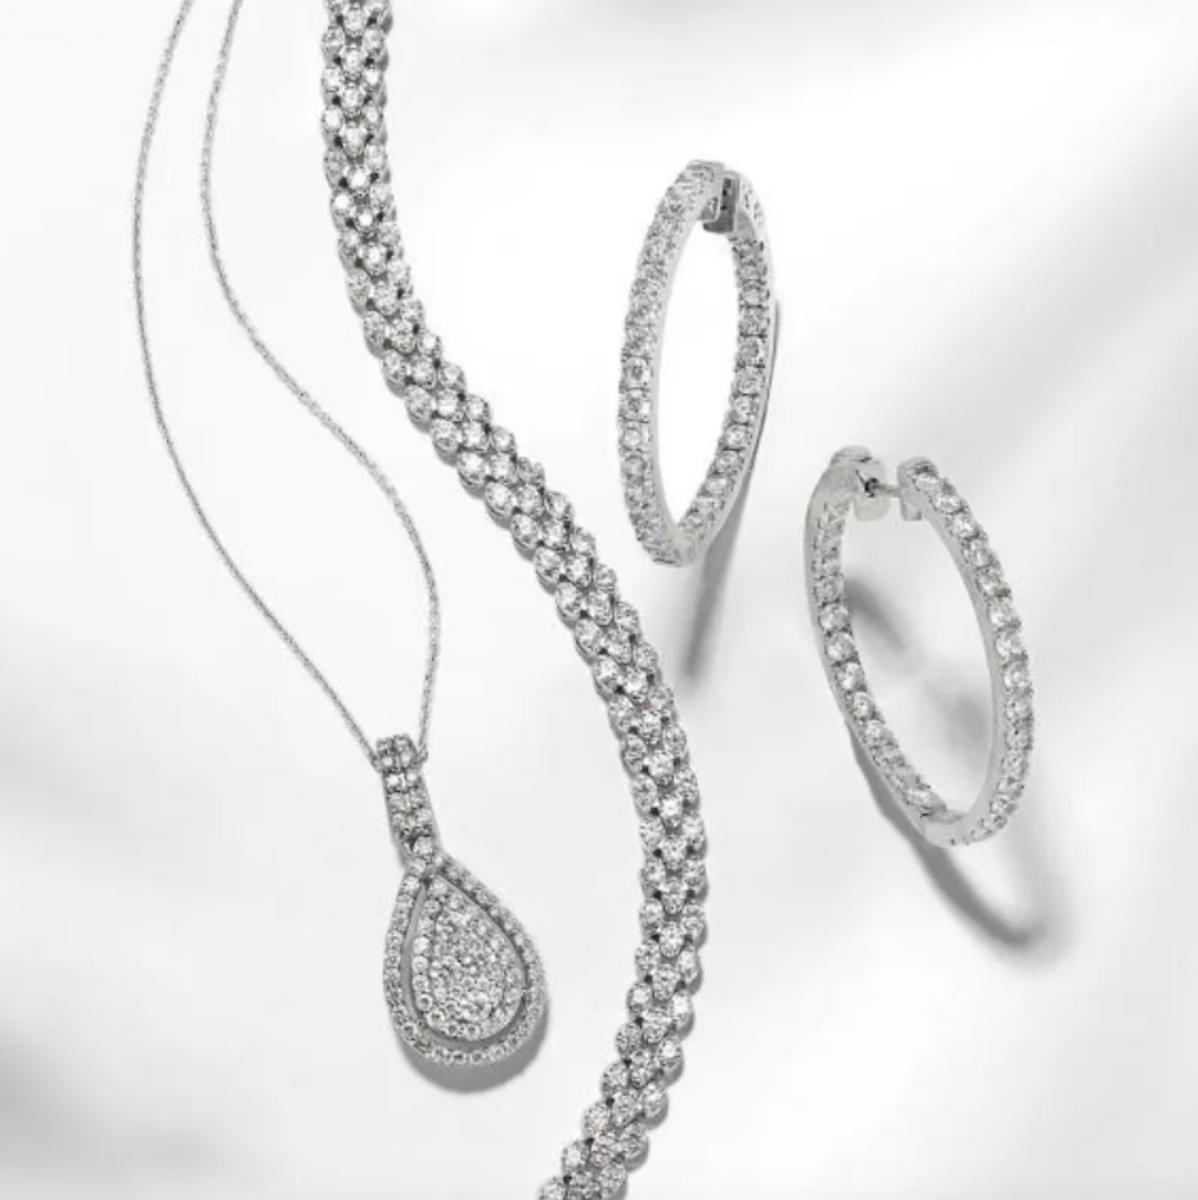 50-75% Off Fine Jewelry & Watches Flash Sale